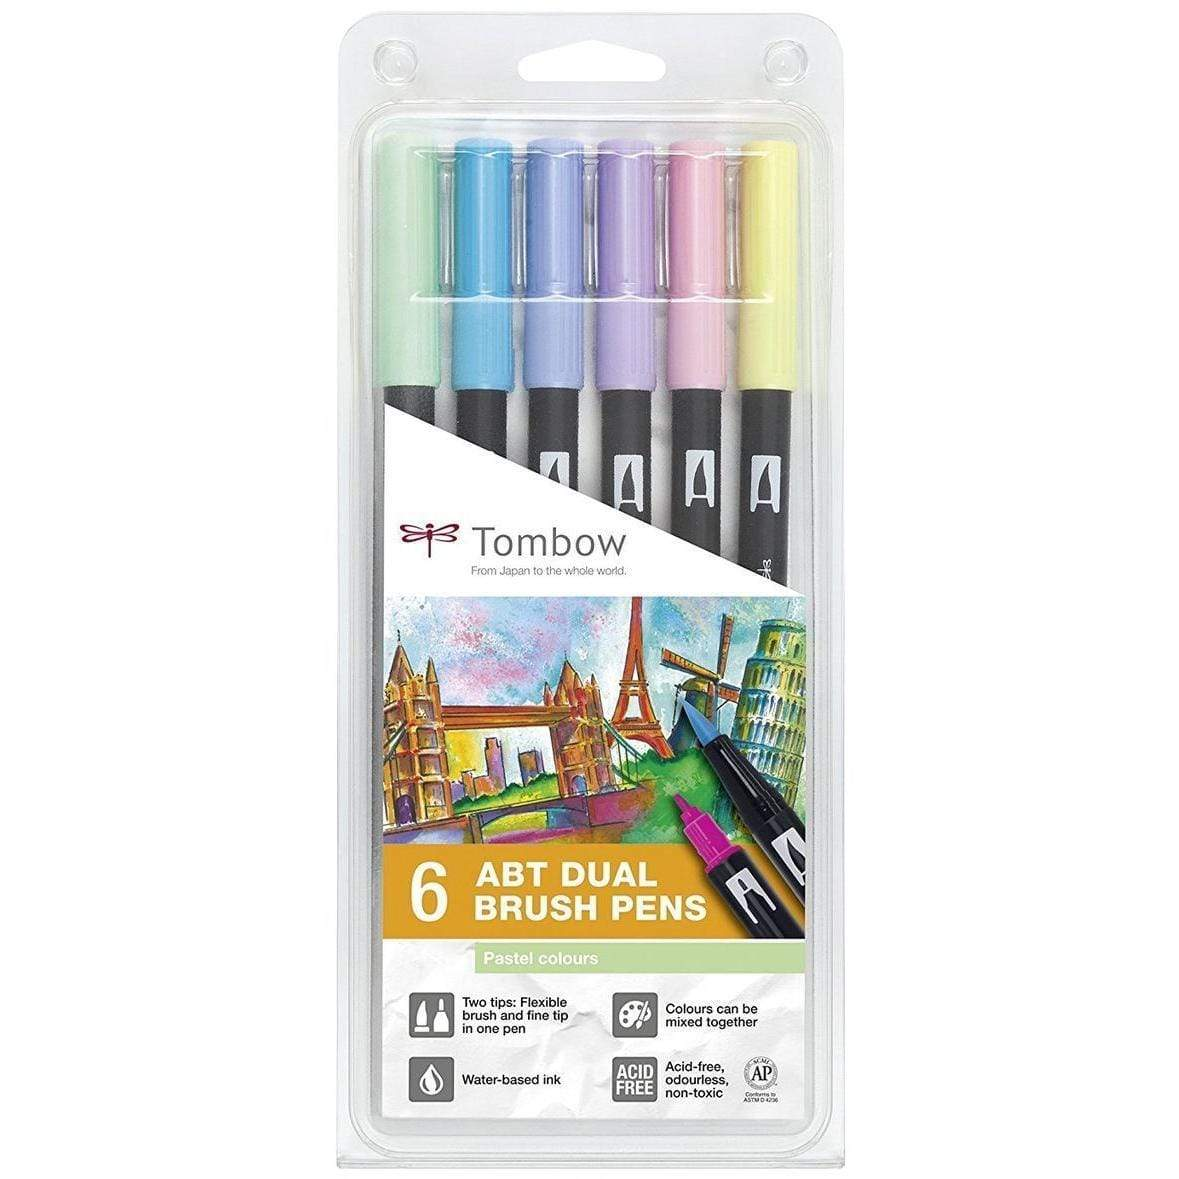 Tombow rotulador dual brush estuche 6 pastel colours ABT6P2 TOMBOW Oferta CENTROARTESANO